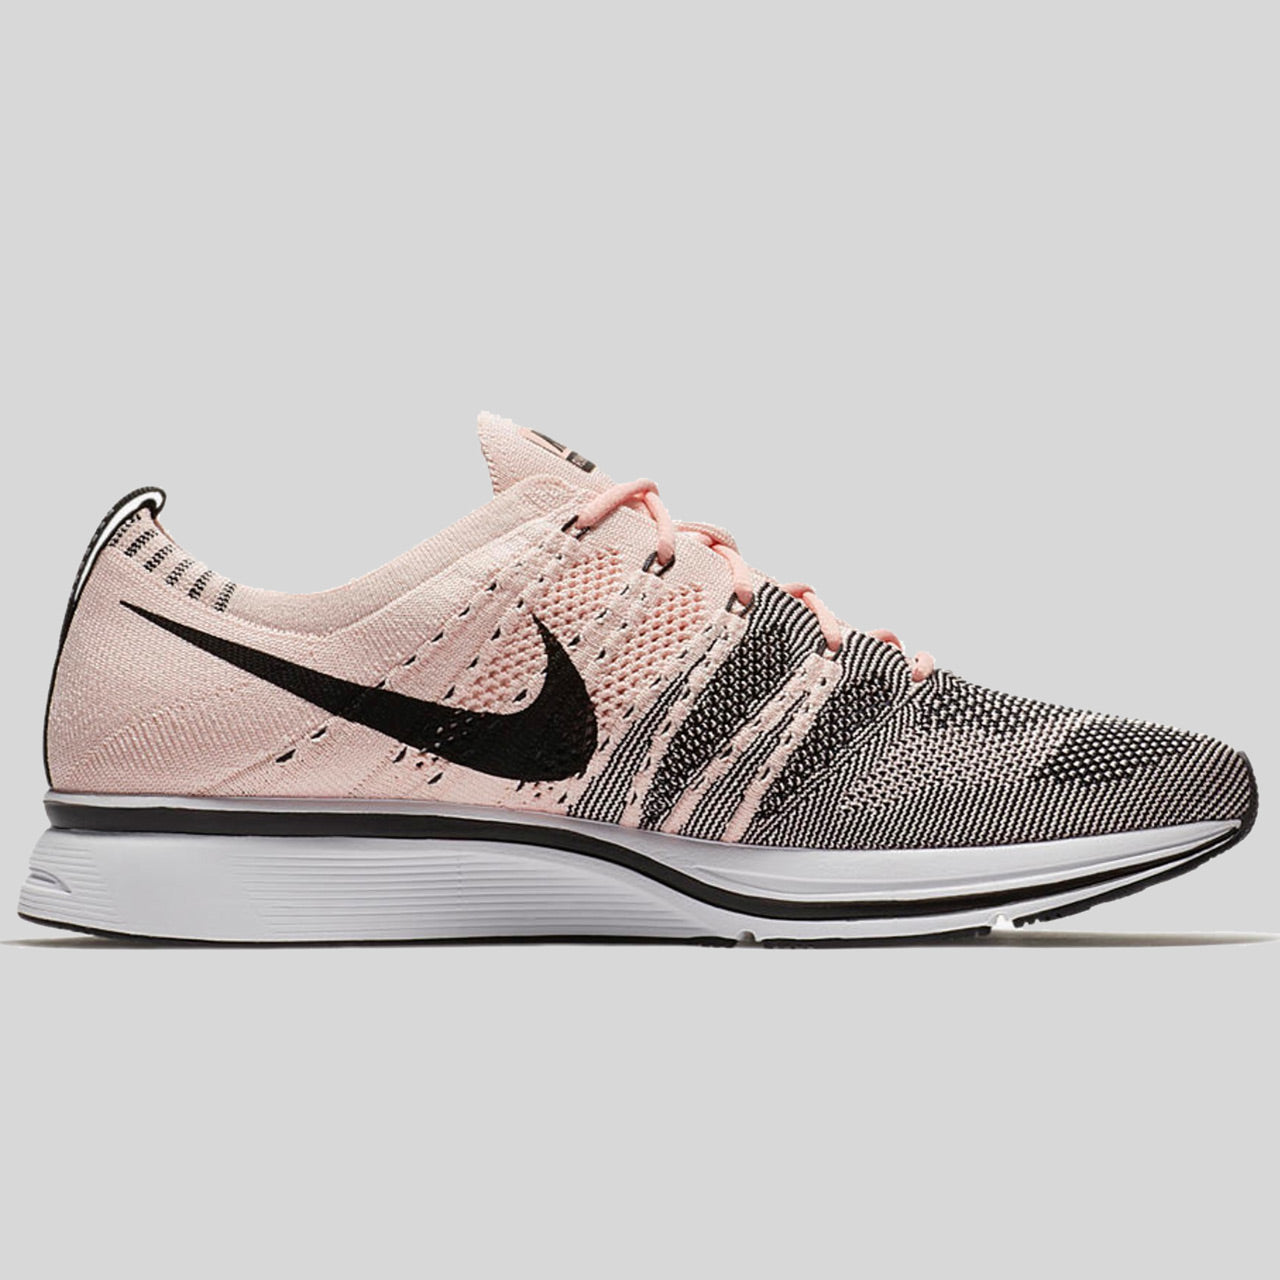 """7bcd6cbb9ce3 Nike Flyknit Trainer Pink """"Sunset Tint"""" (AH8396-600)"""